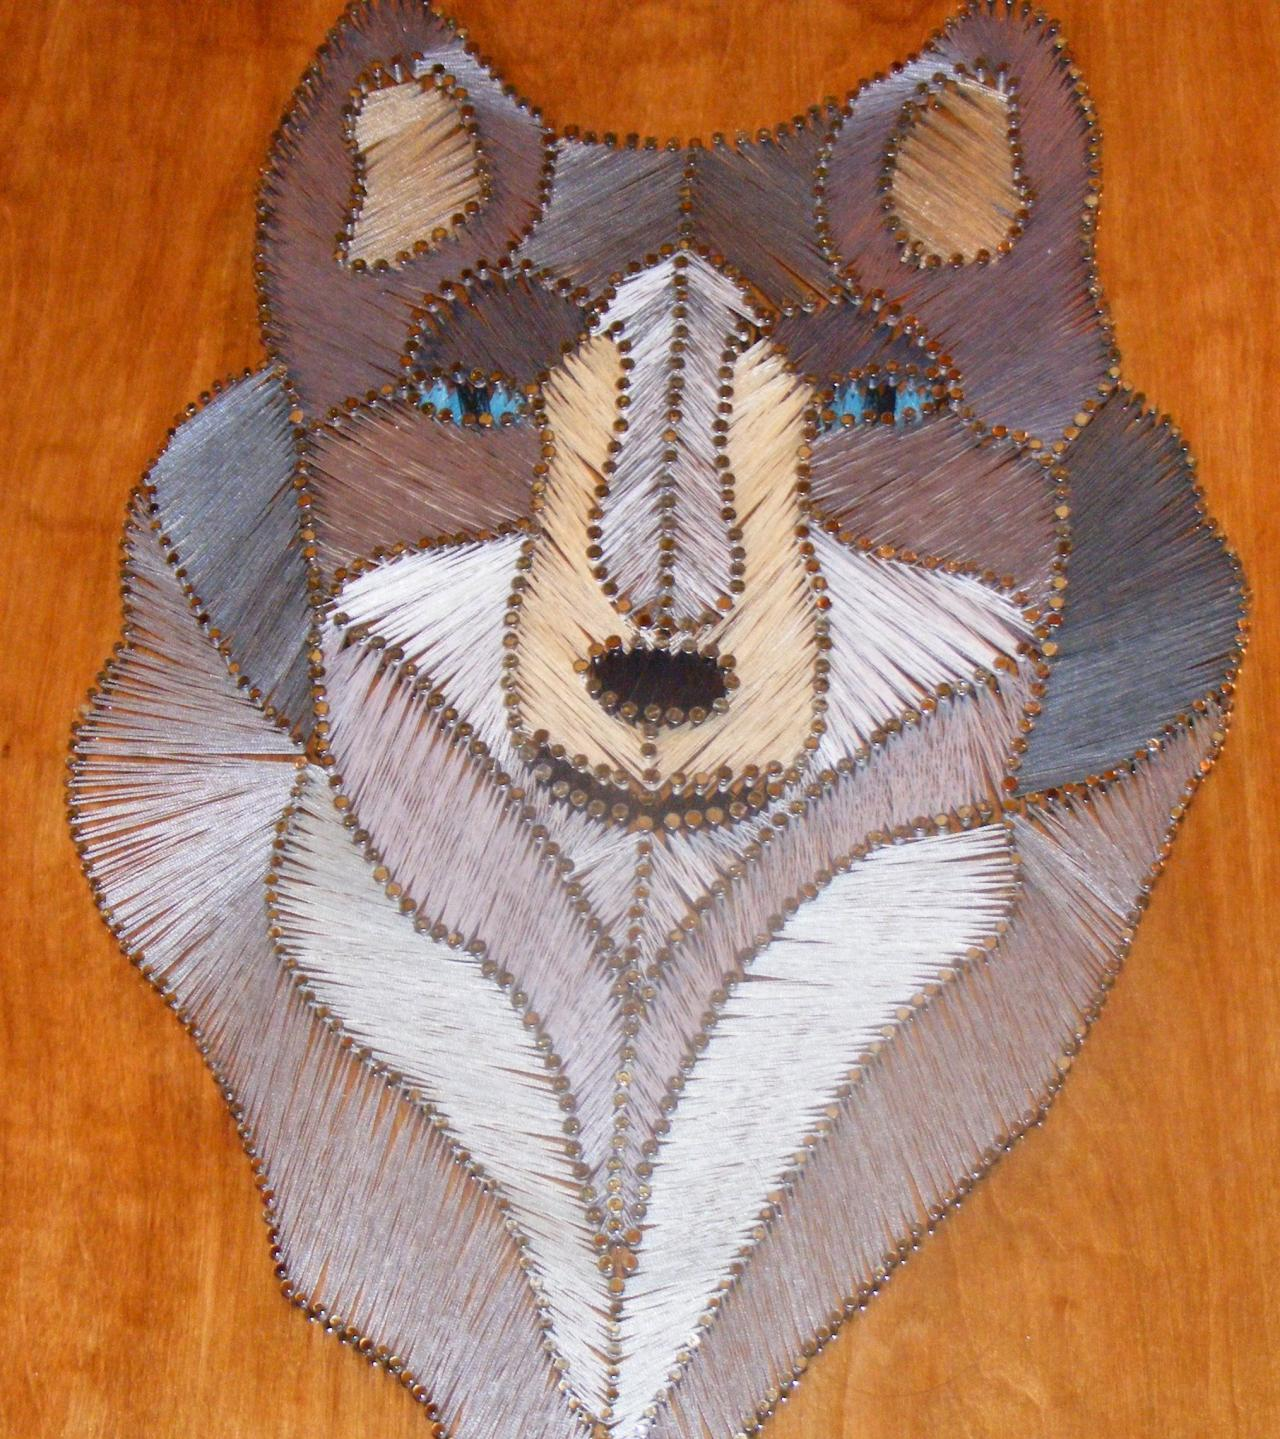 """Foto: Reprodução / <a href=""""http://www.designsinwoodandstring.com/string_art_wolf_cougar_and_indian_feather_fan#Previous"""" target=""""_blank"""">Designs in wood and string</a>"""